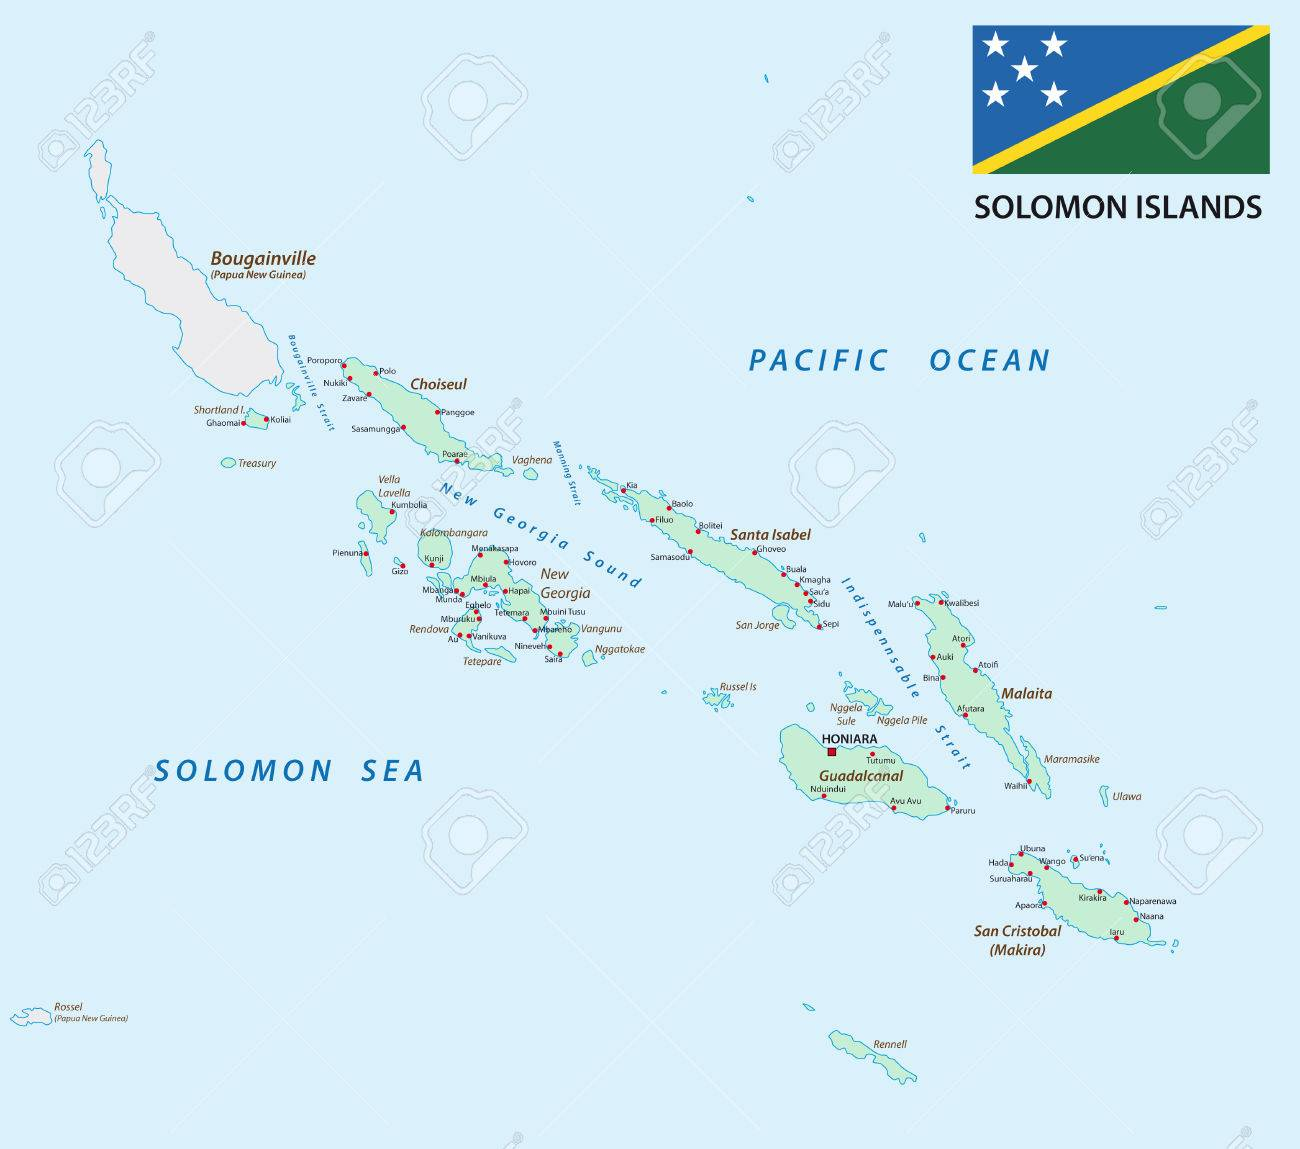 Solomon Islands Map With Flag Royalty Free Cliparts Vectors And - Solomon islands map